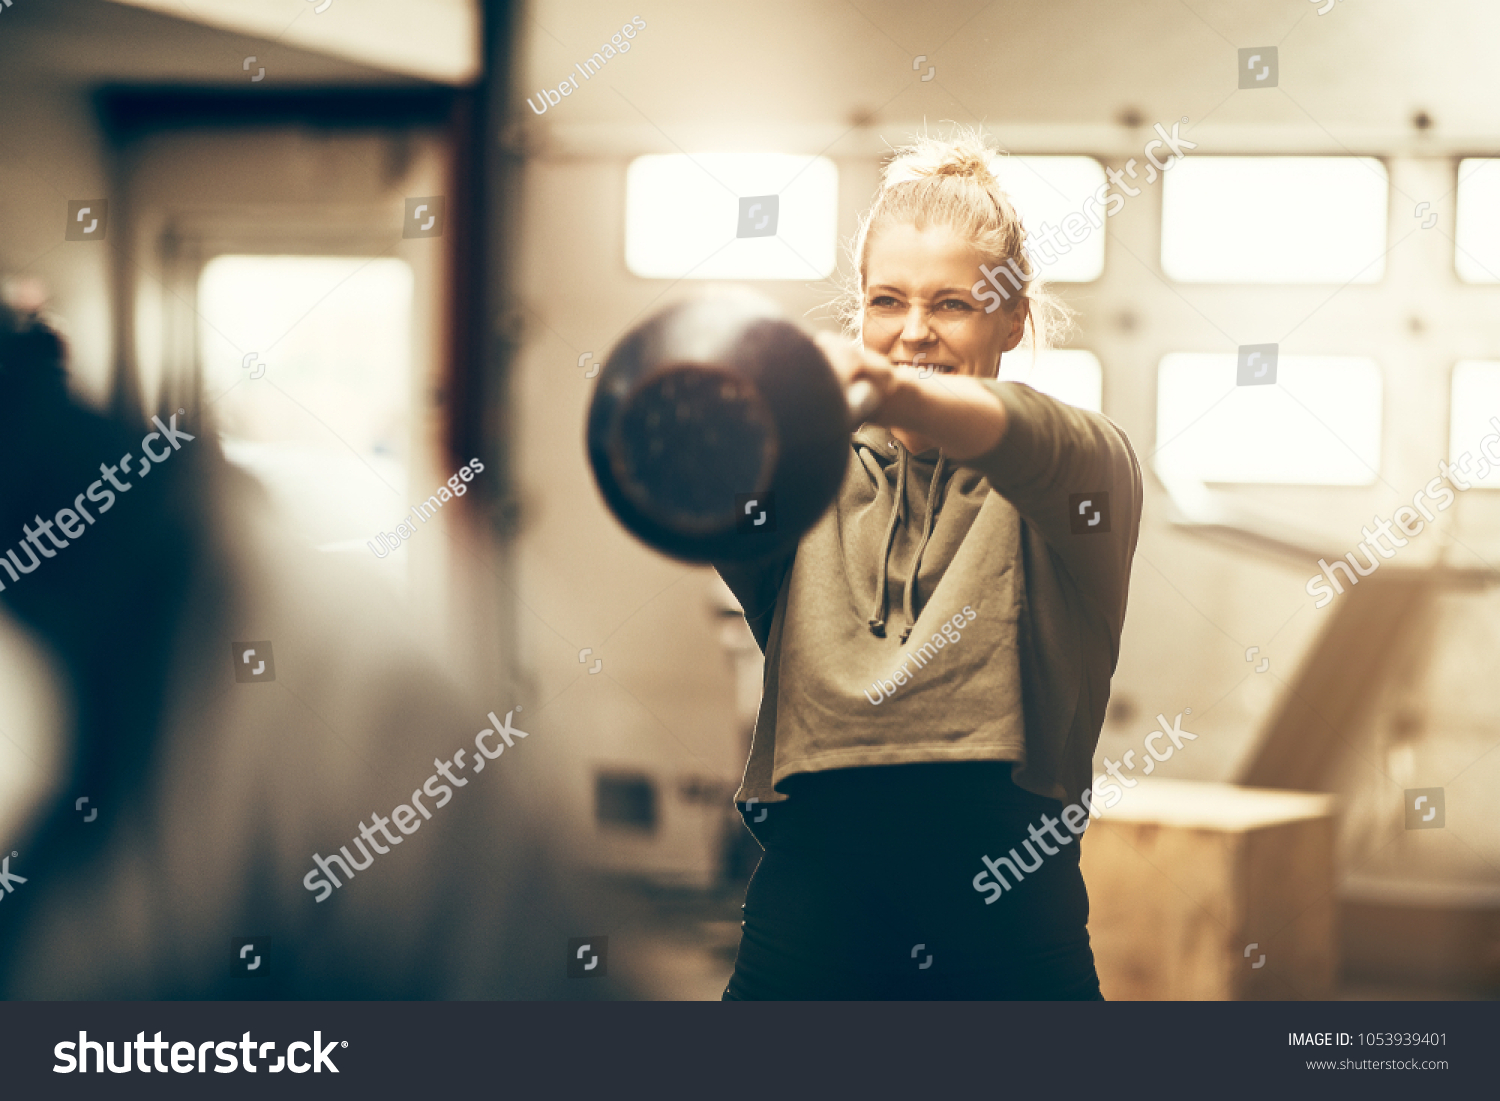 Smiling young woman in sportswear swinging a dumbbell during an exercise  session in a gym